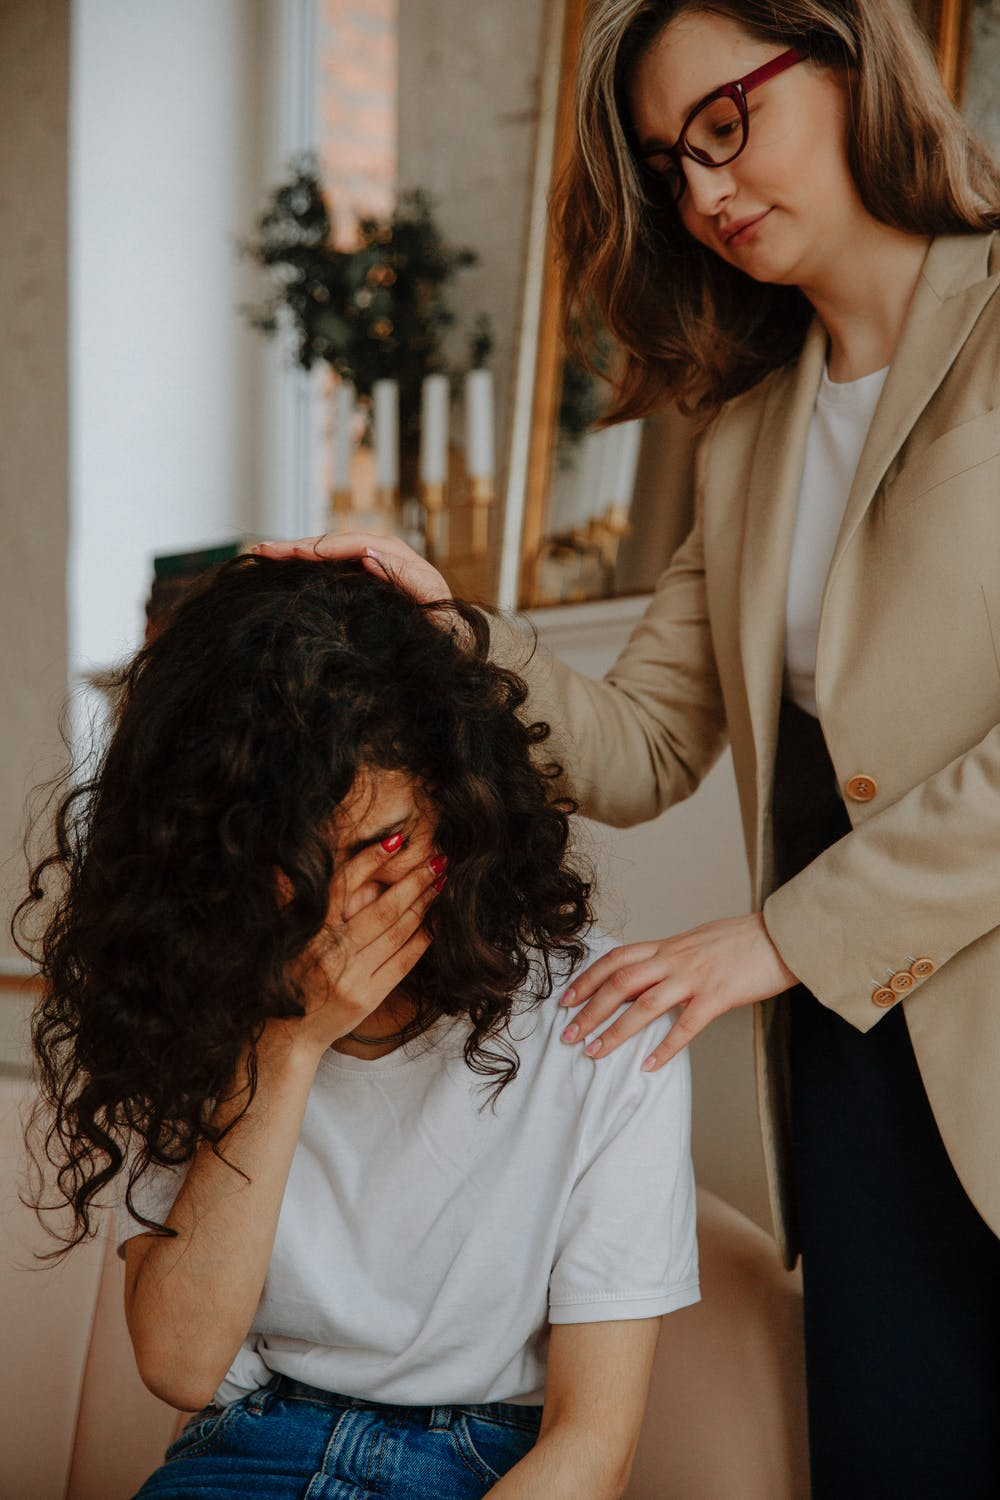 mother comforting teen daughter crying